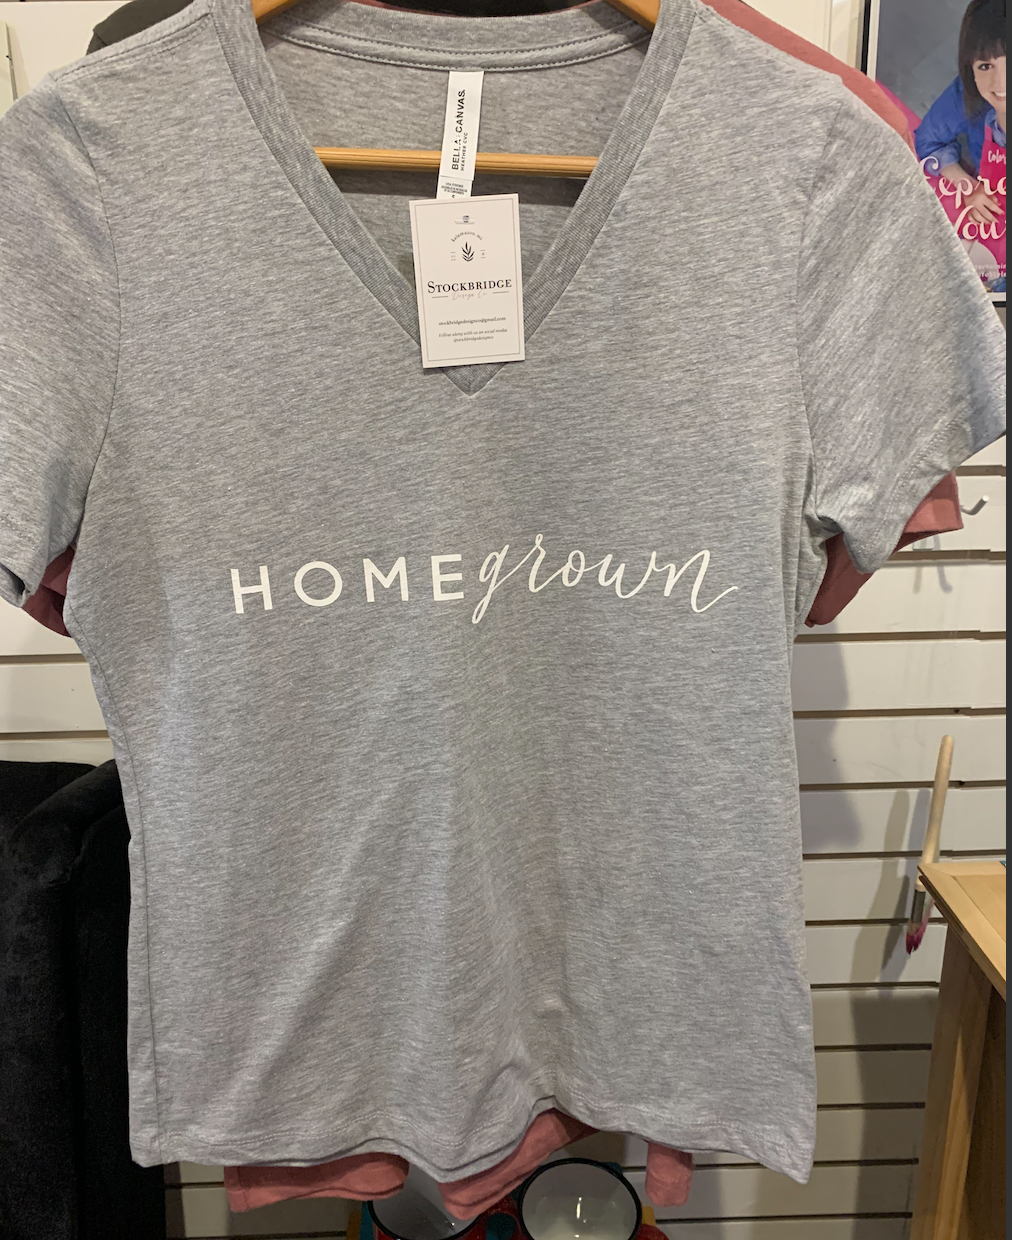 Stockbridge Gray Short-sleeve 'Homegrown' T-shirt